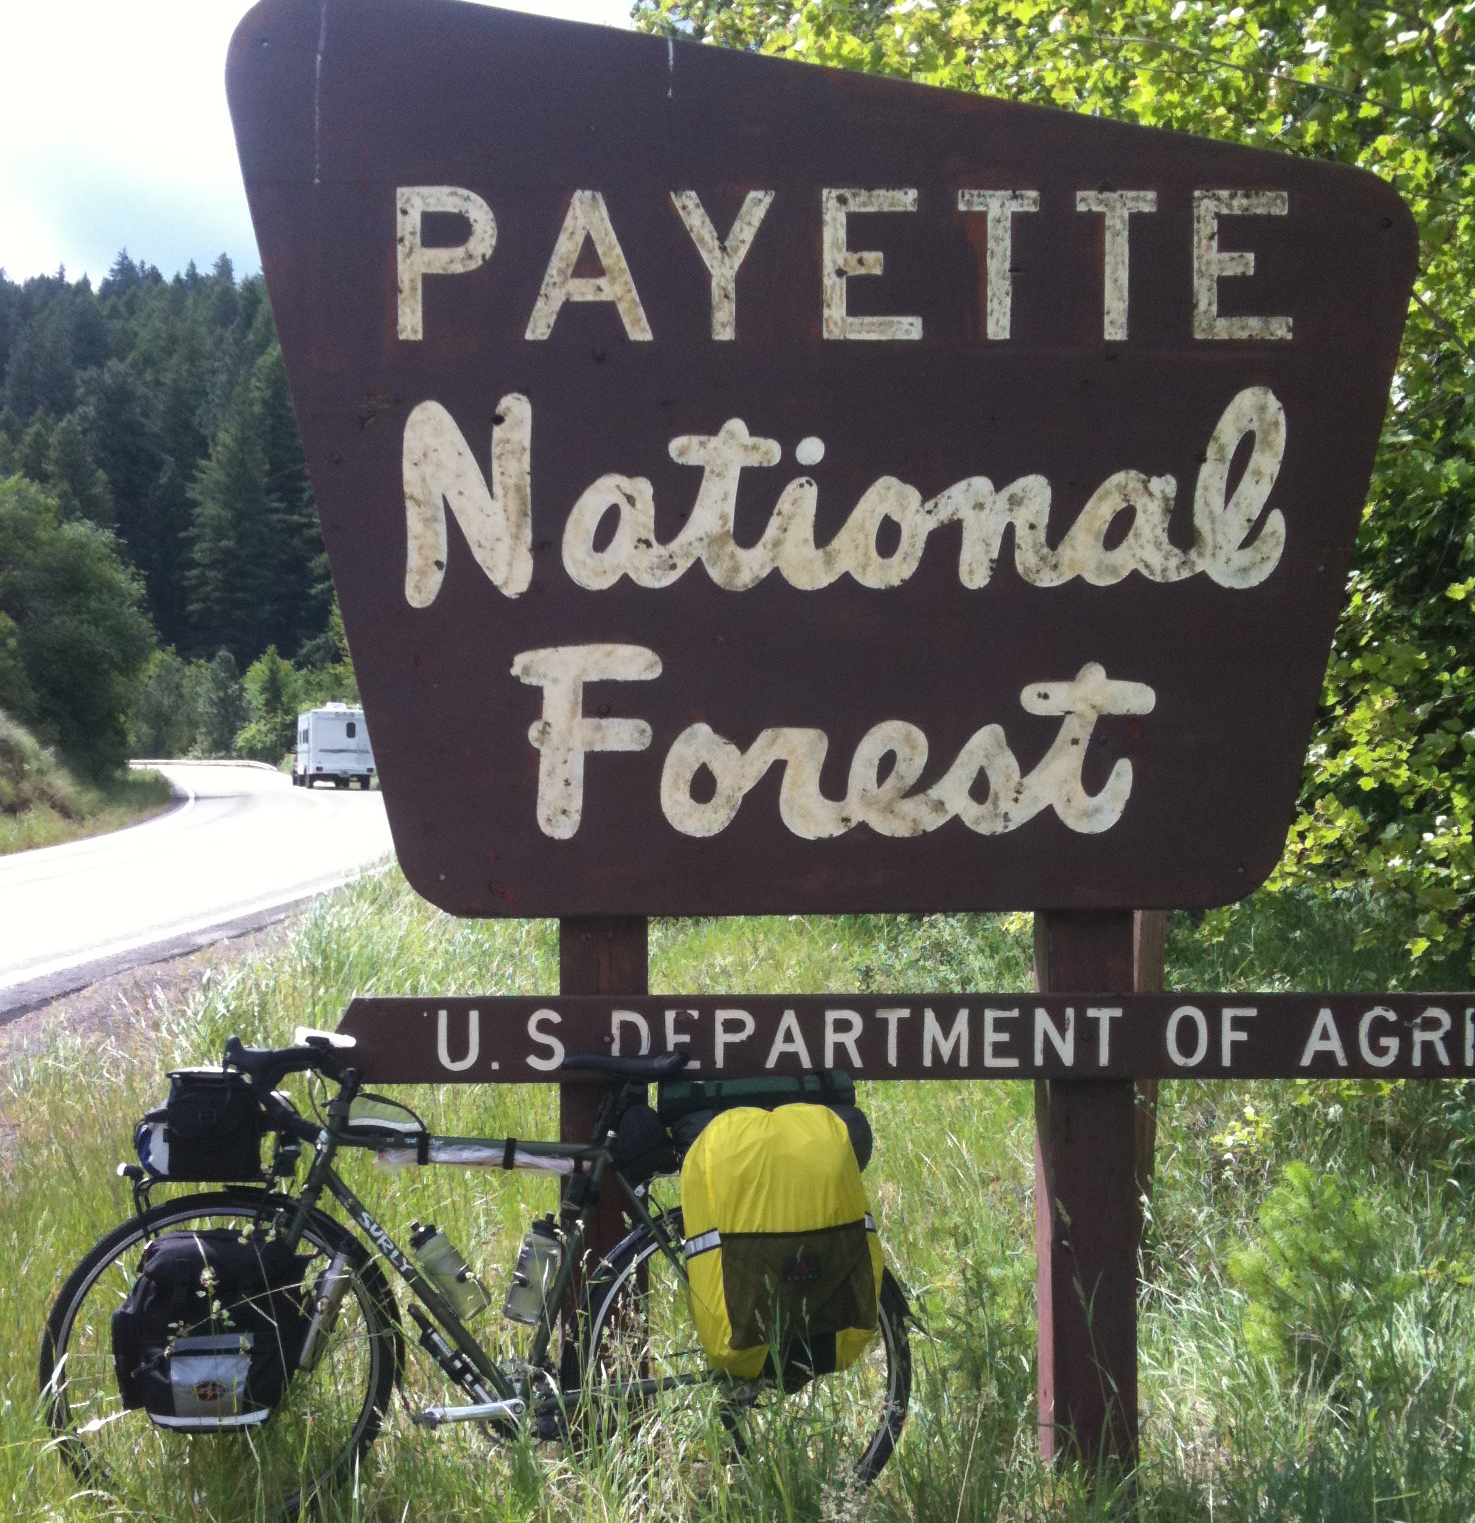 Payette National Forest